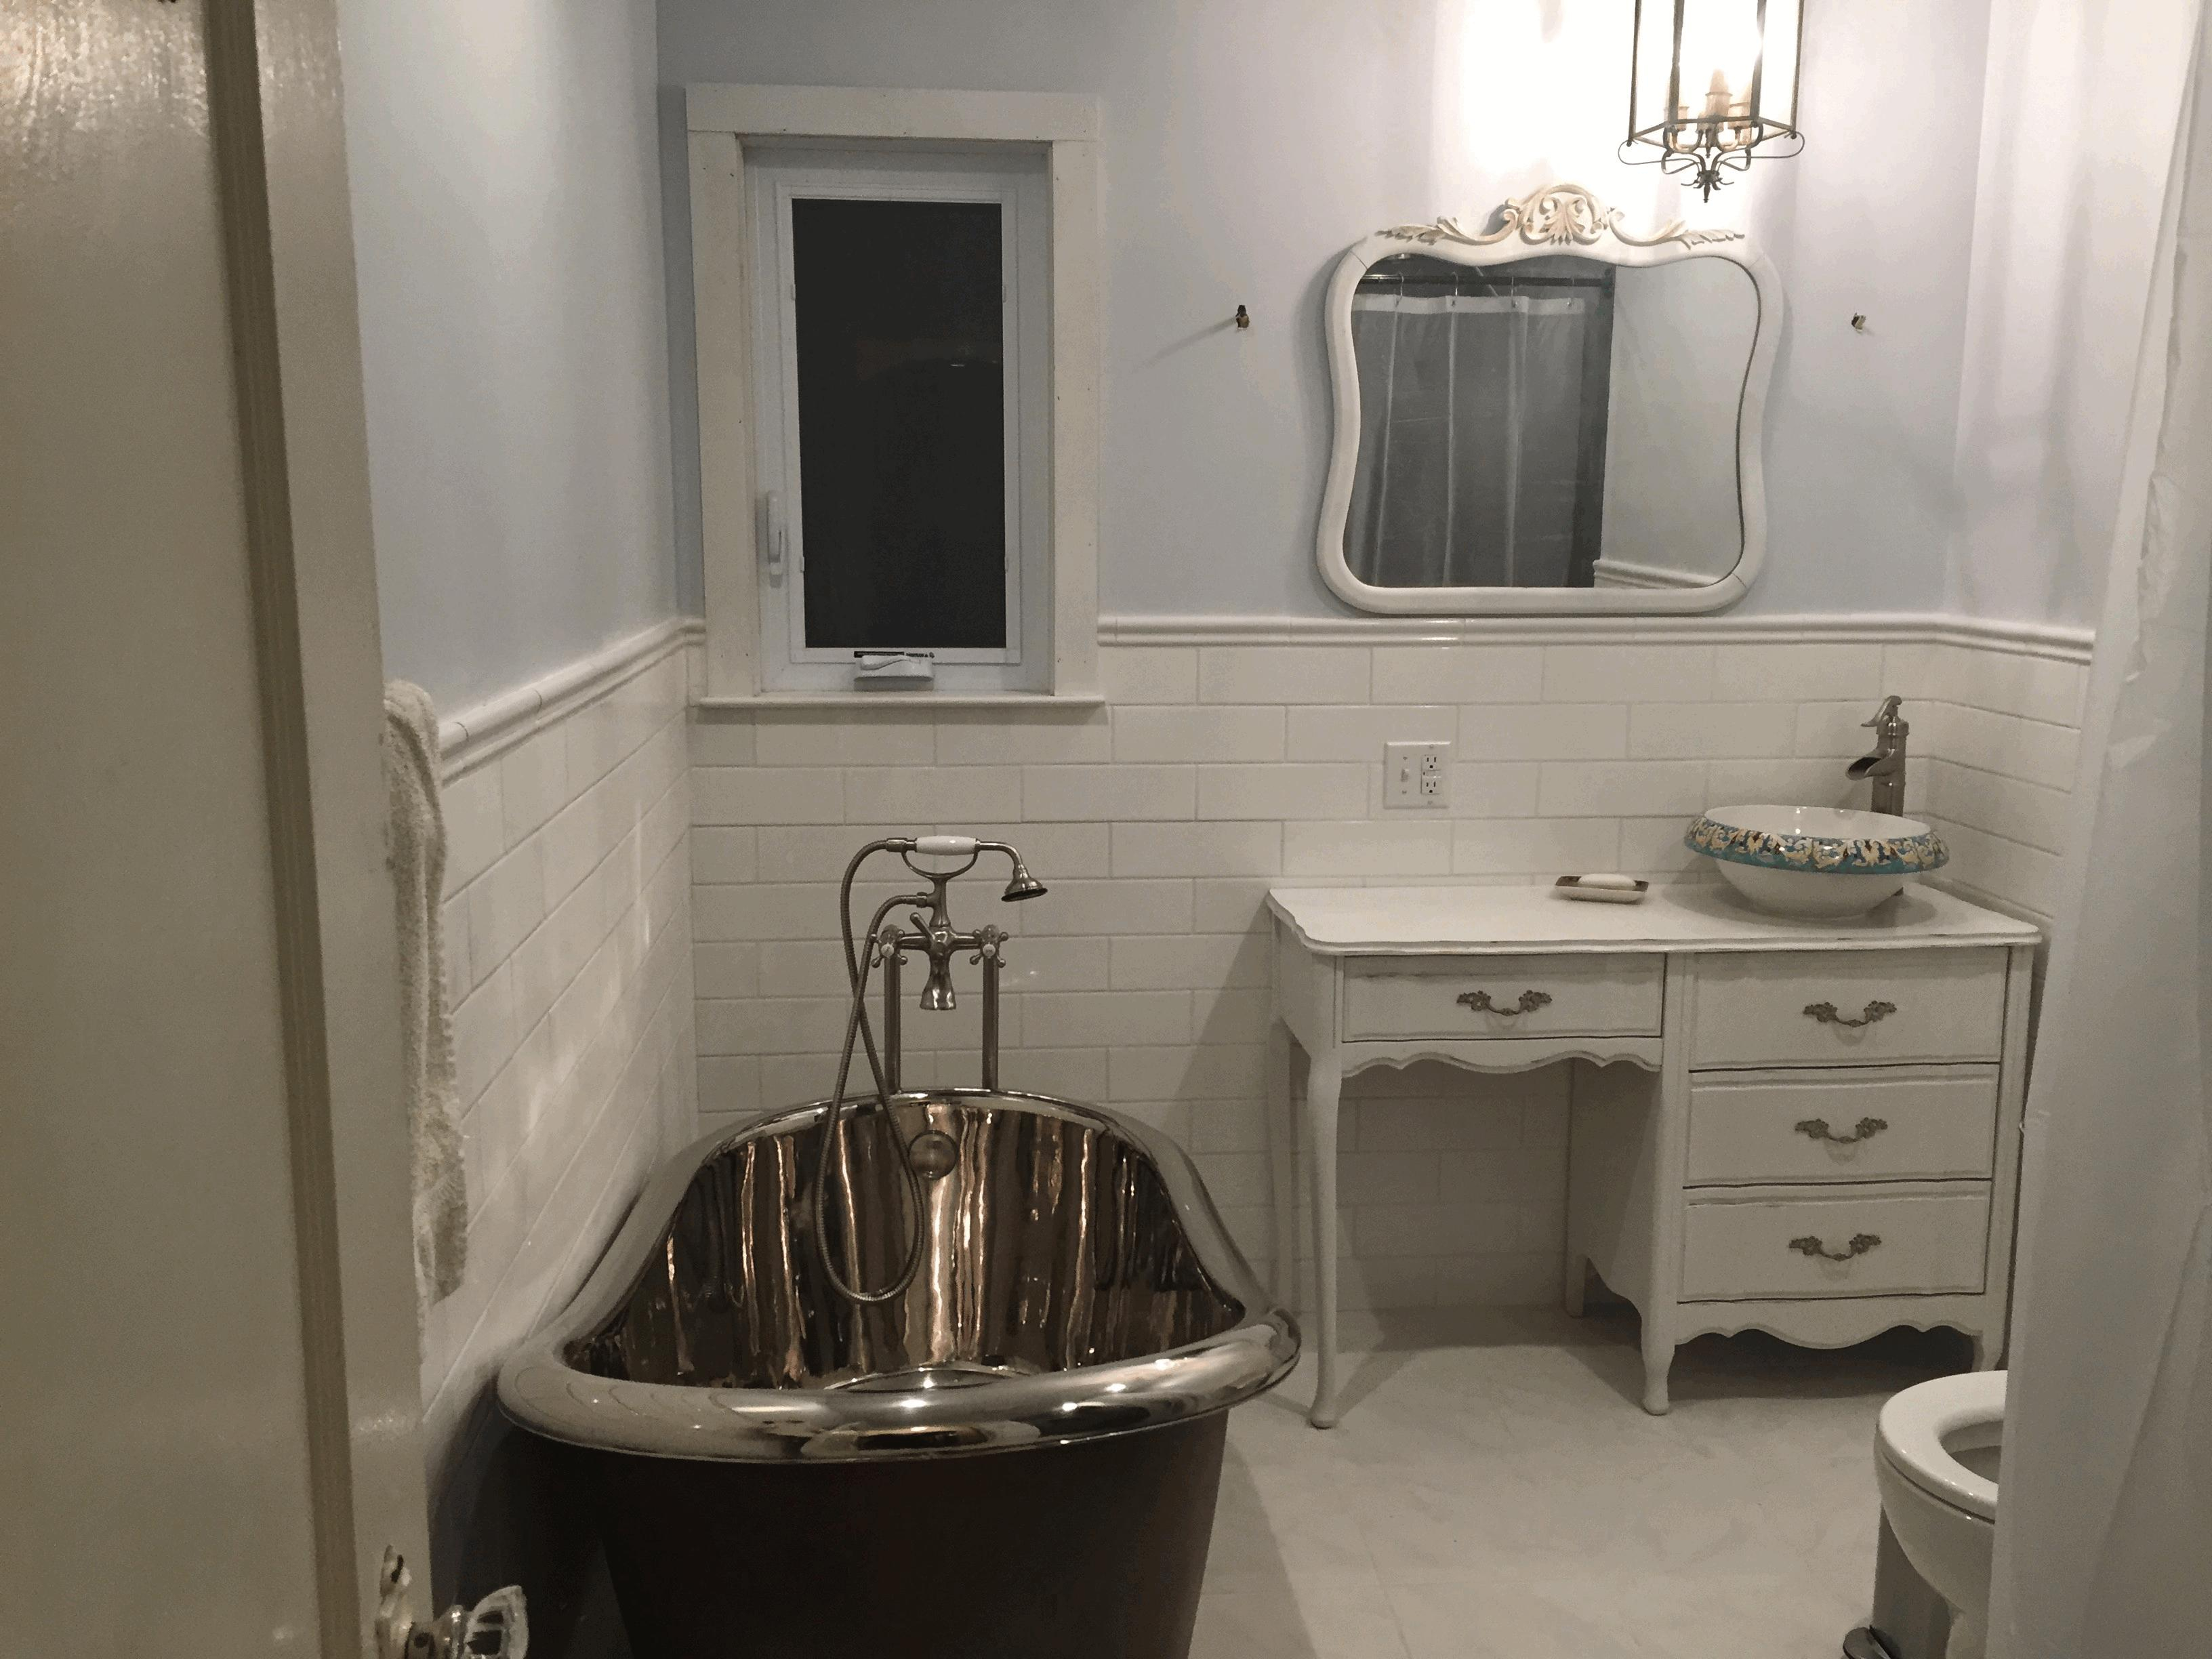 Lovely Country French Bathrooms White Porcelain Alcove Bathtub Smooth Oval inside Oval Room Blue Bathroom